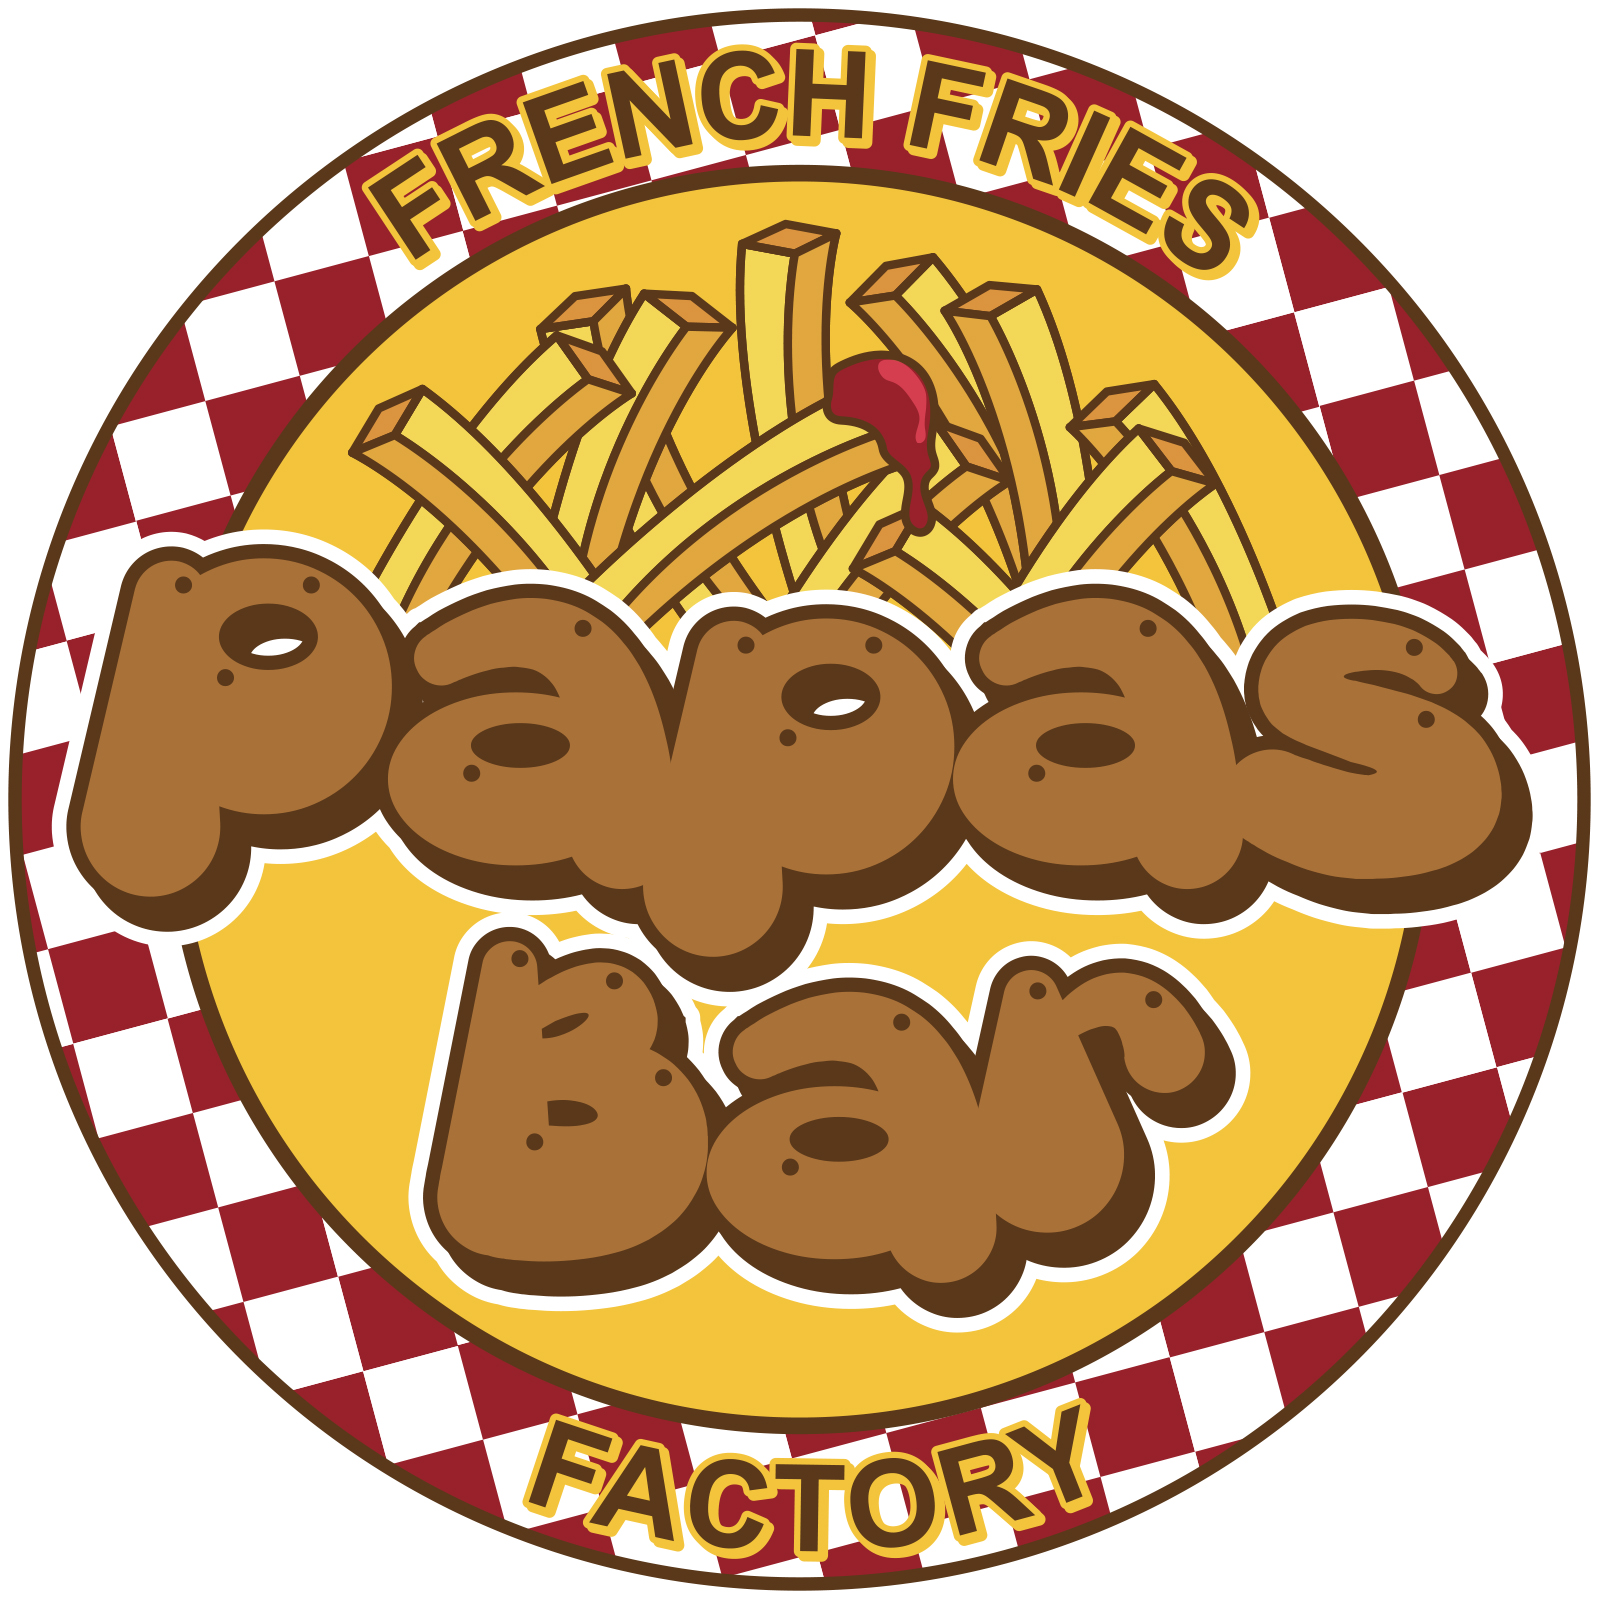 PAPAS BAR - FRENCH FRIES FACTORY